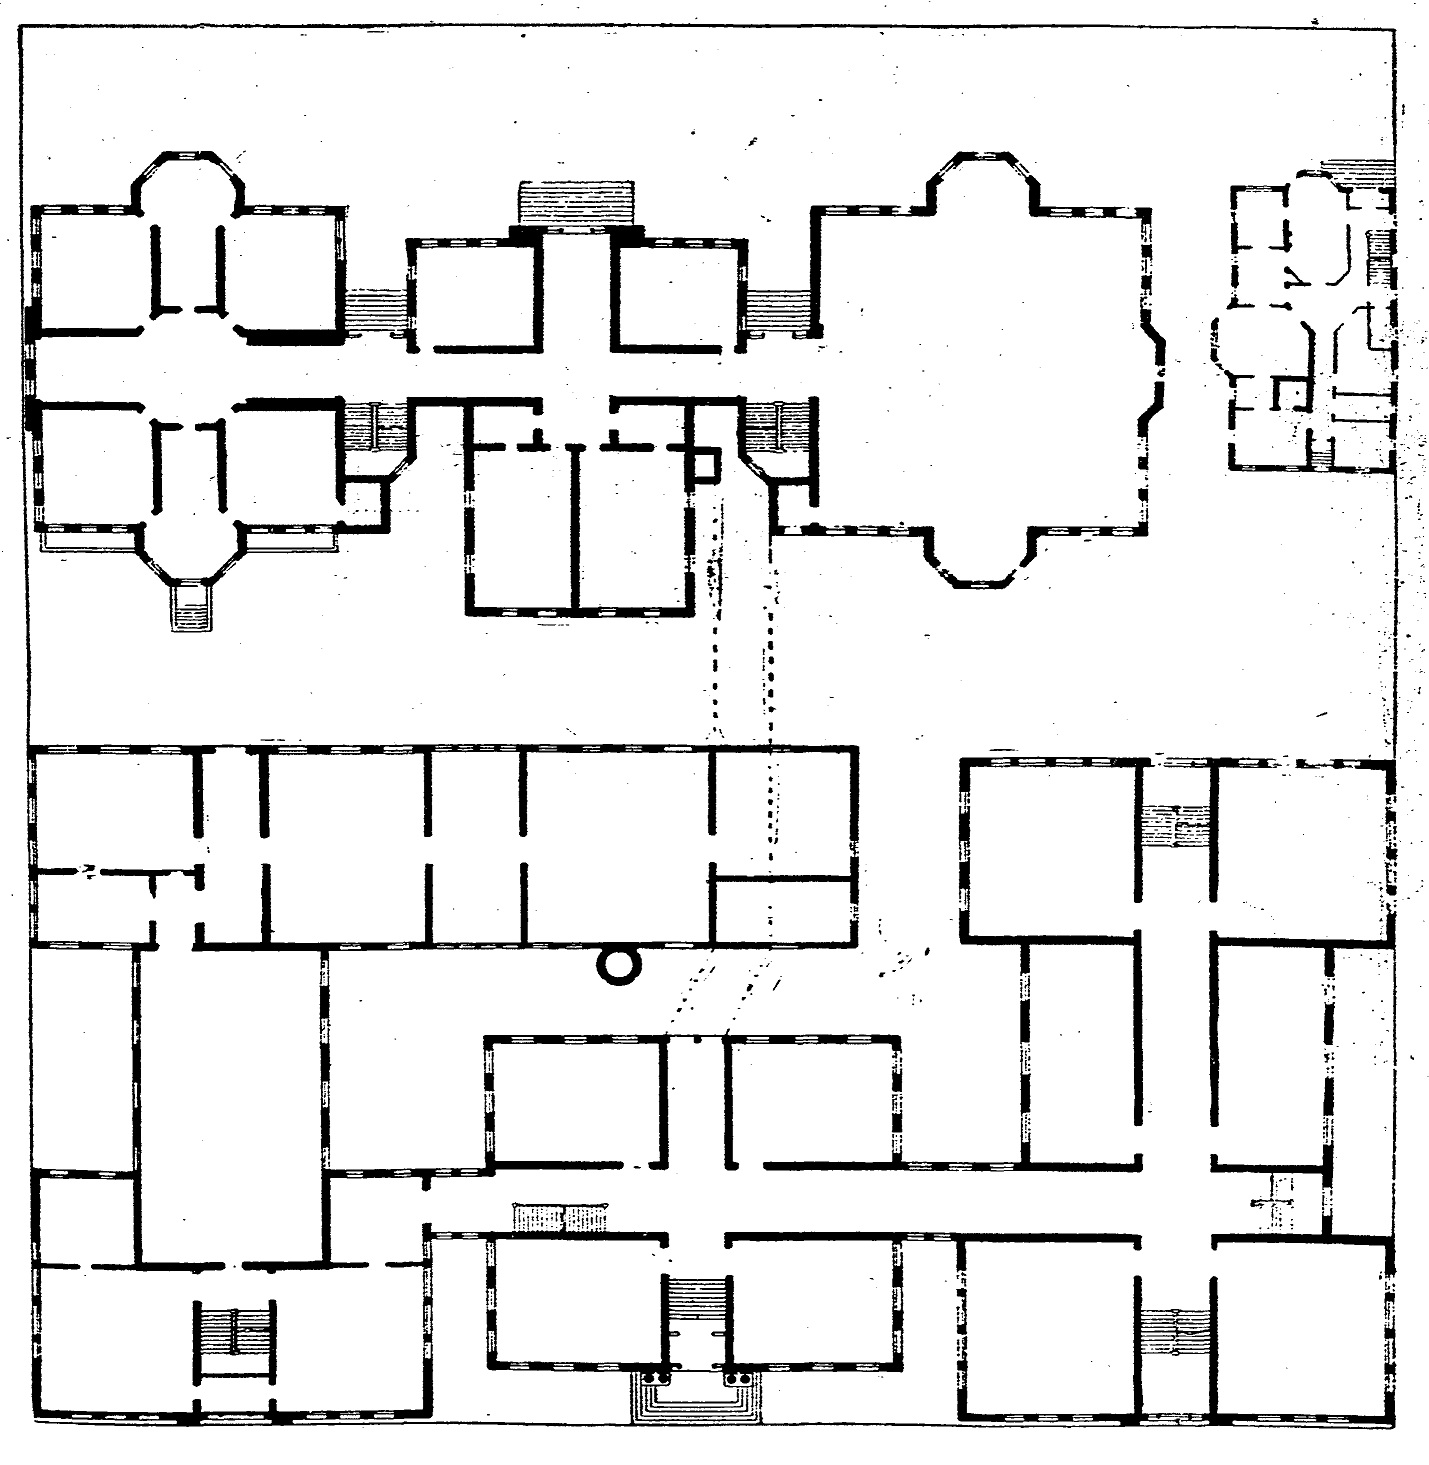 image educational old central floor plan jpg maj a c rosencranz s plan for occupying high school square